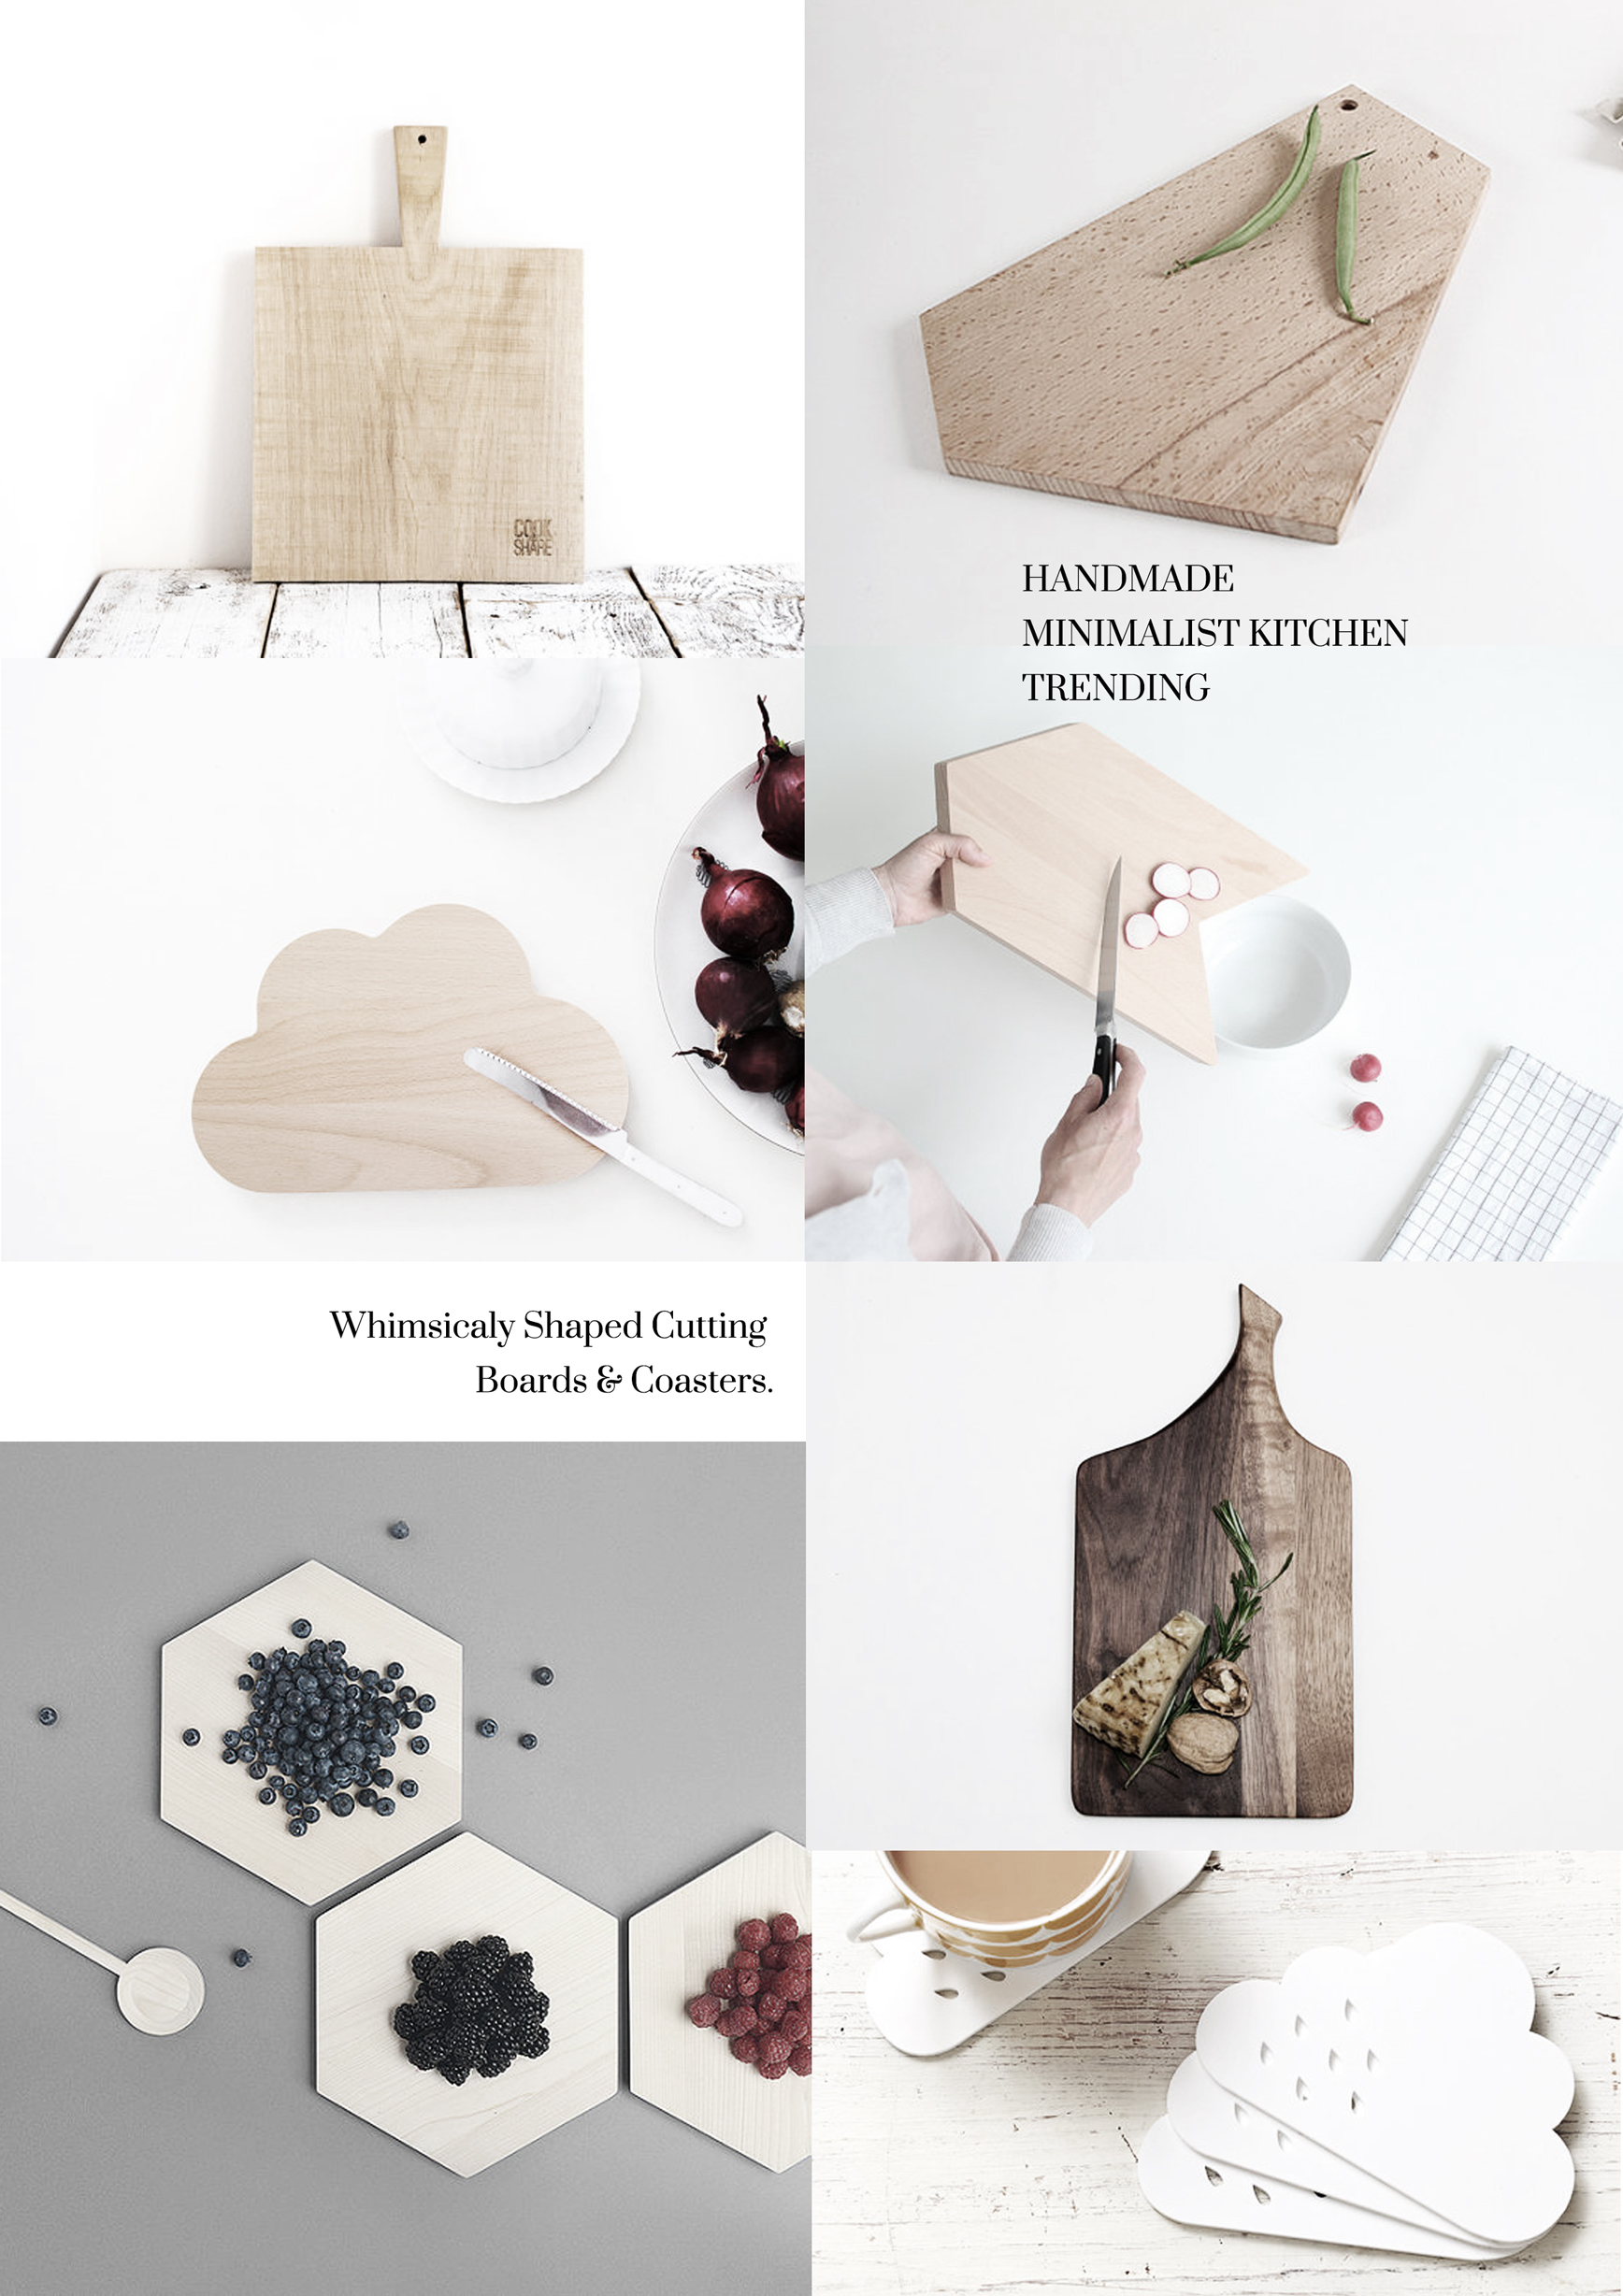 Handmade Minimalist nordic accessoires for the kitchen